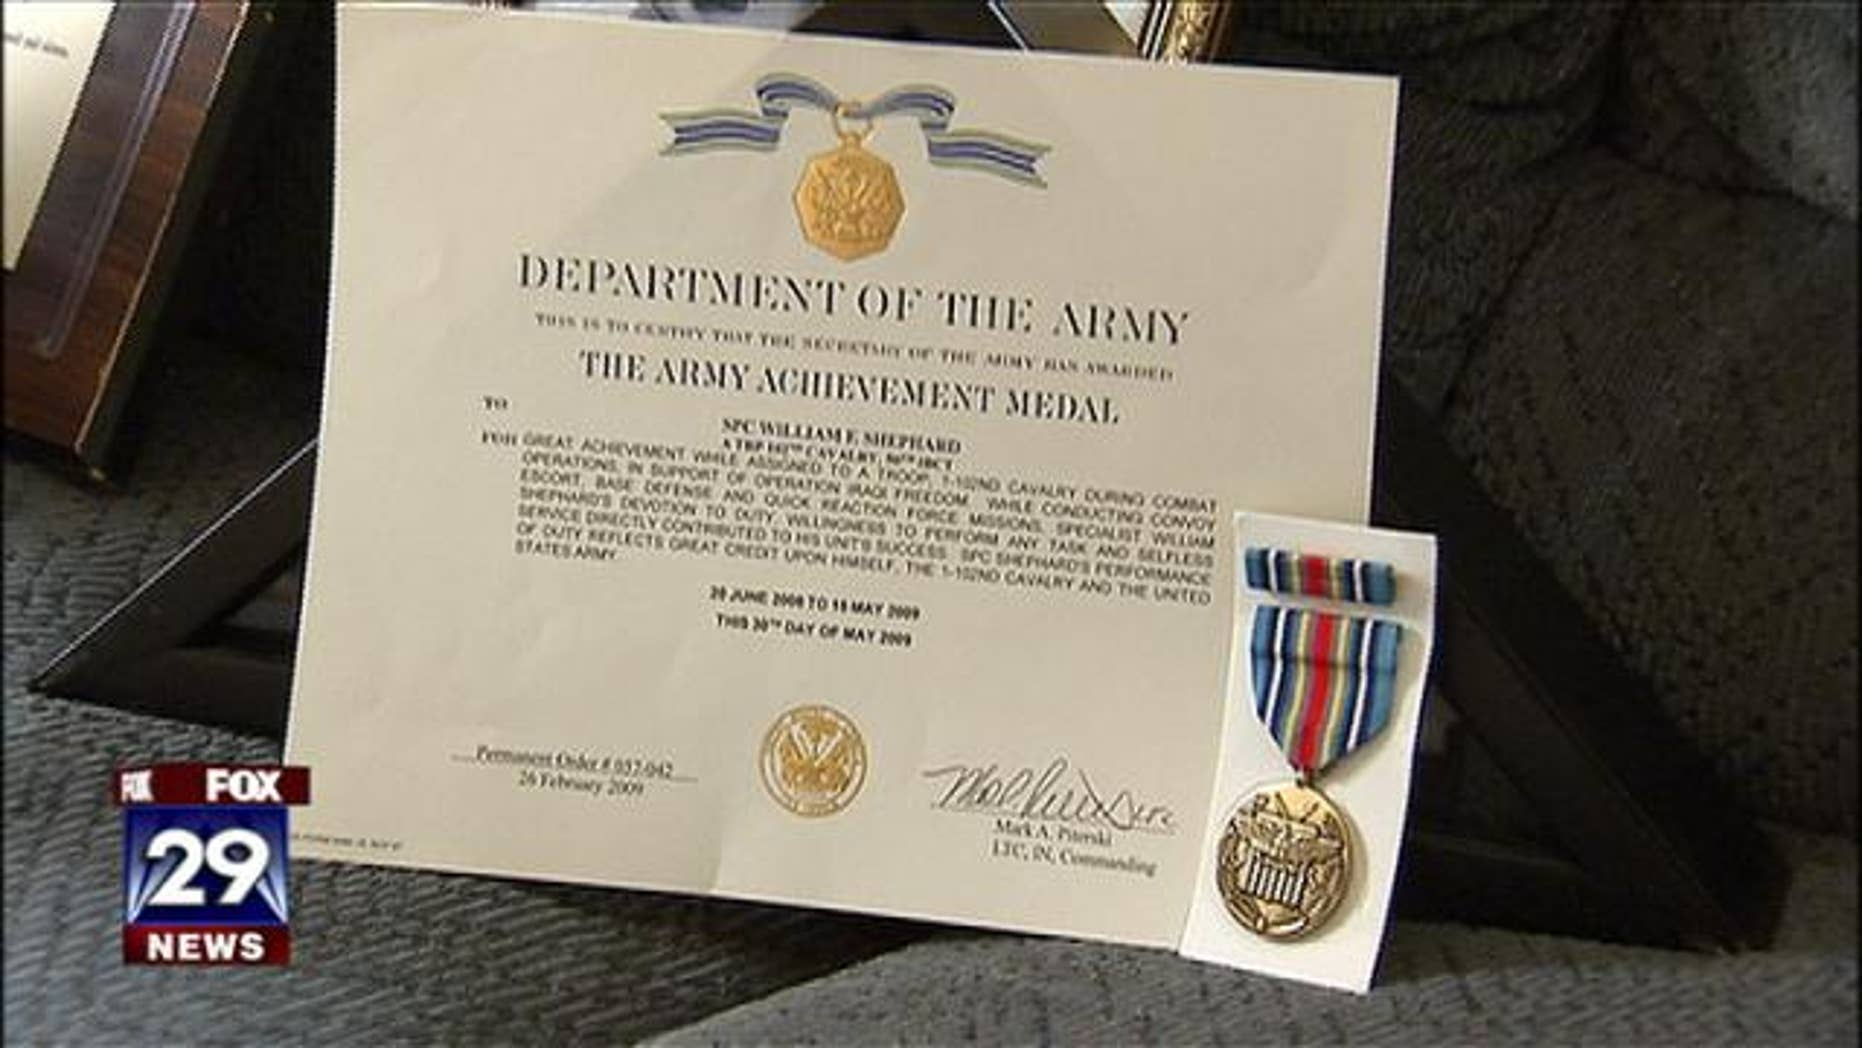 Bill Shephard's Army Achievement certificate and medal